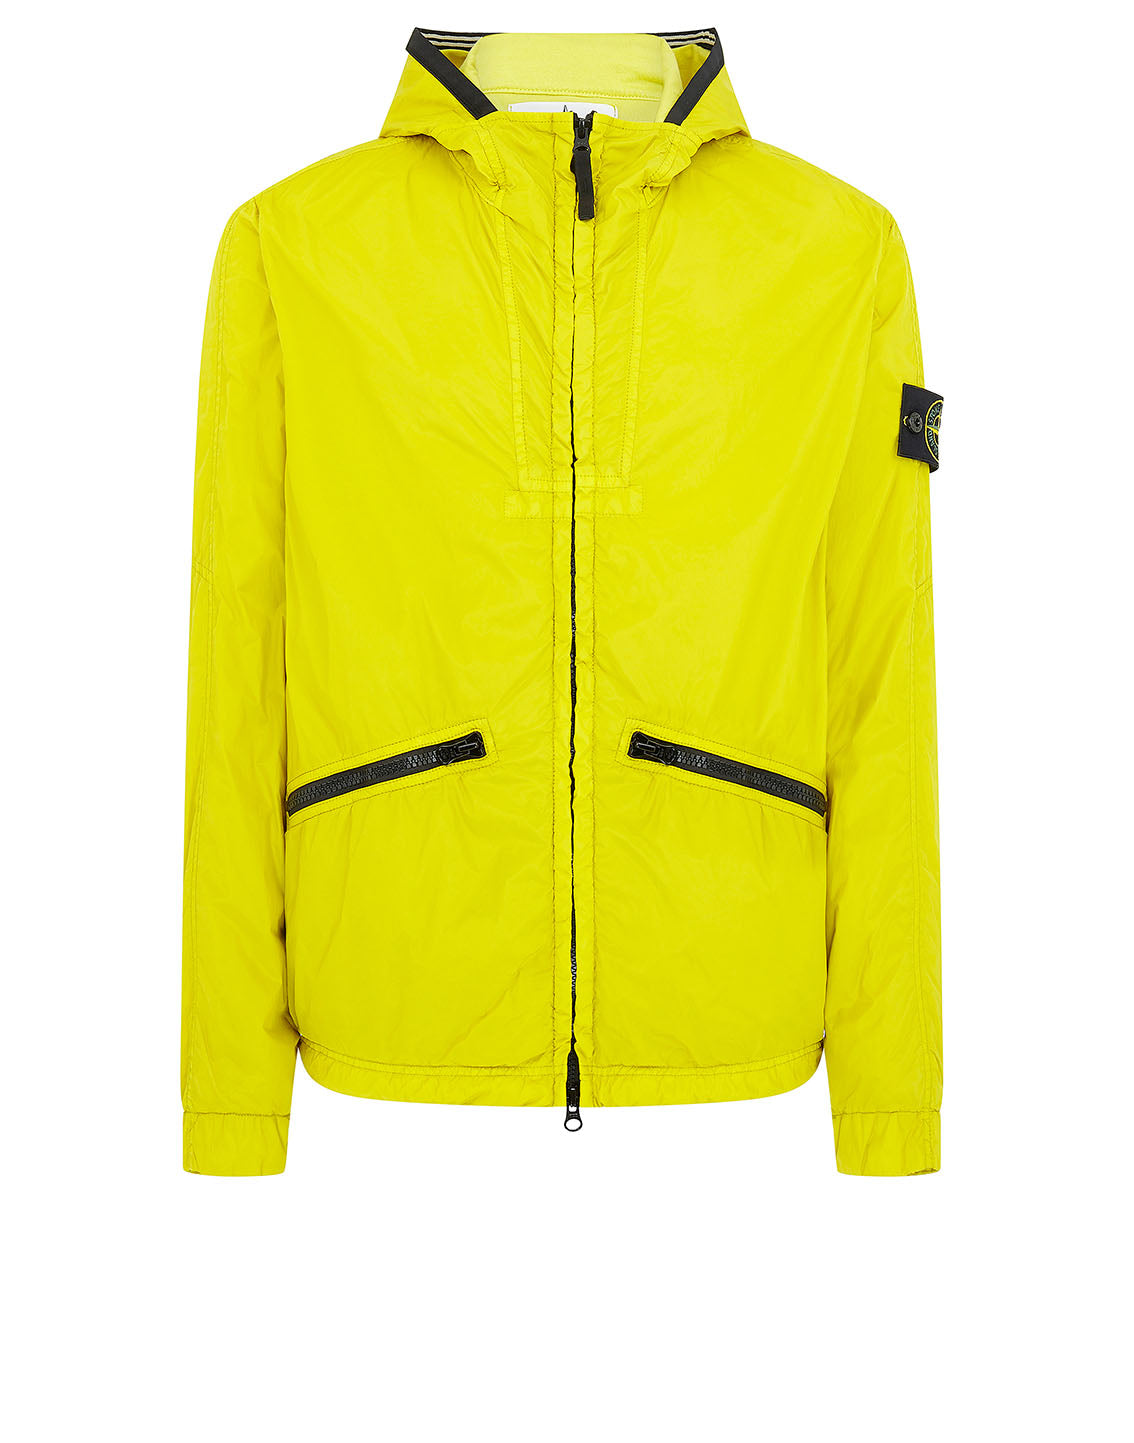 41030 GARMENT DYED CRINKLE REPS NY Jacket in Yellow